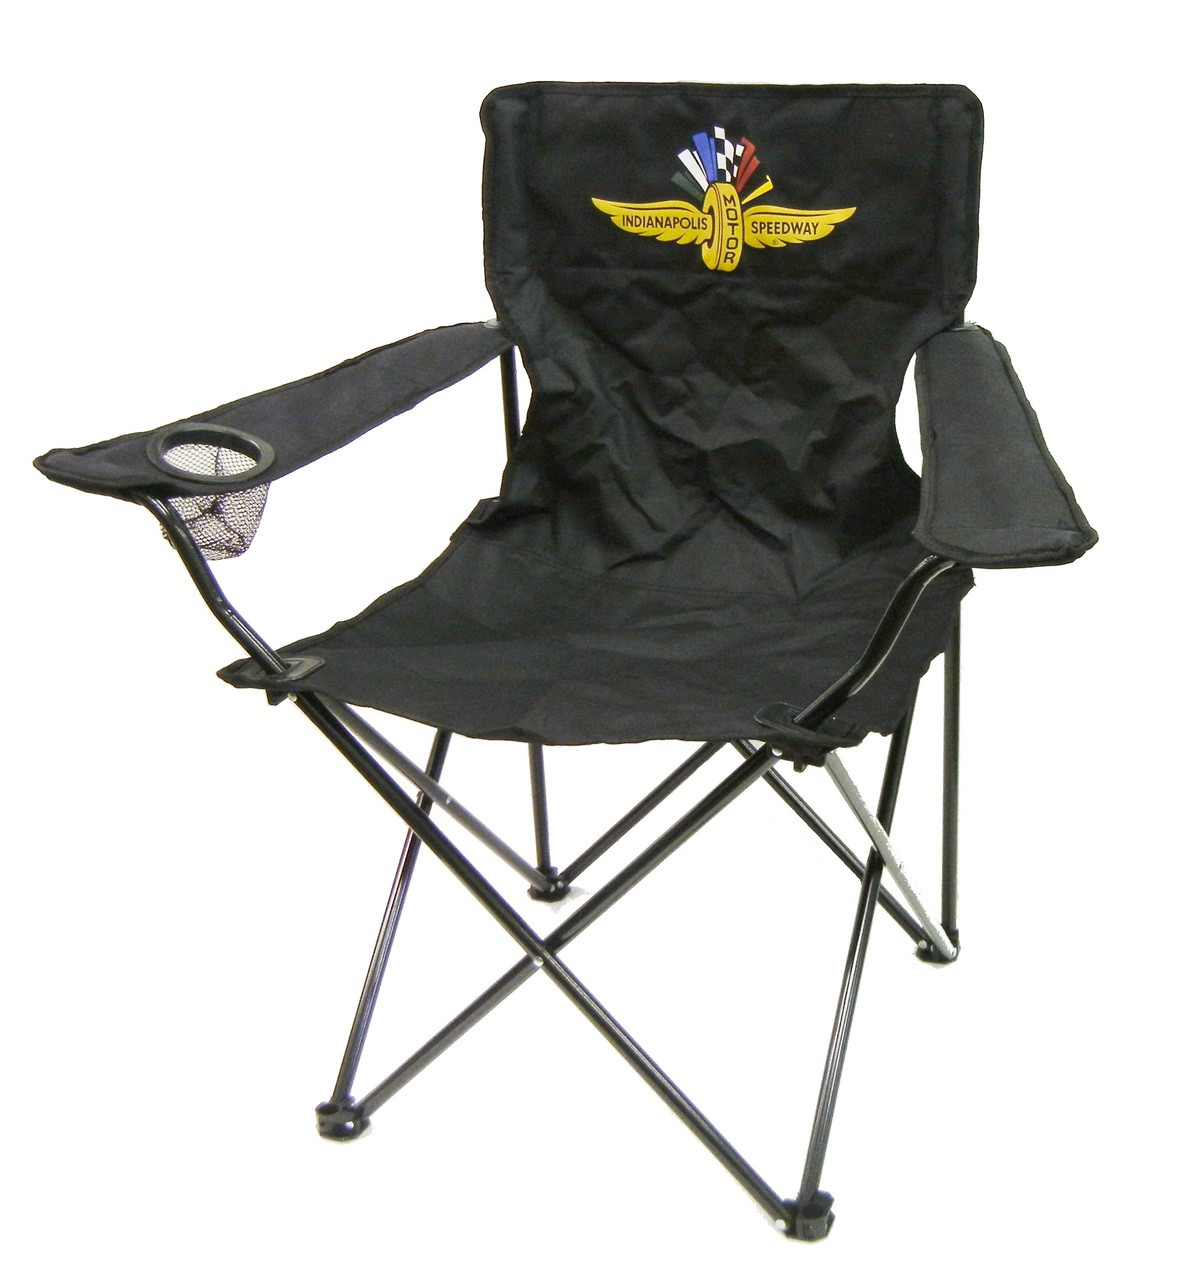 Collapsible Chair Wing Wheel And Flag Collapsible Quad Chair